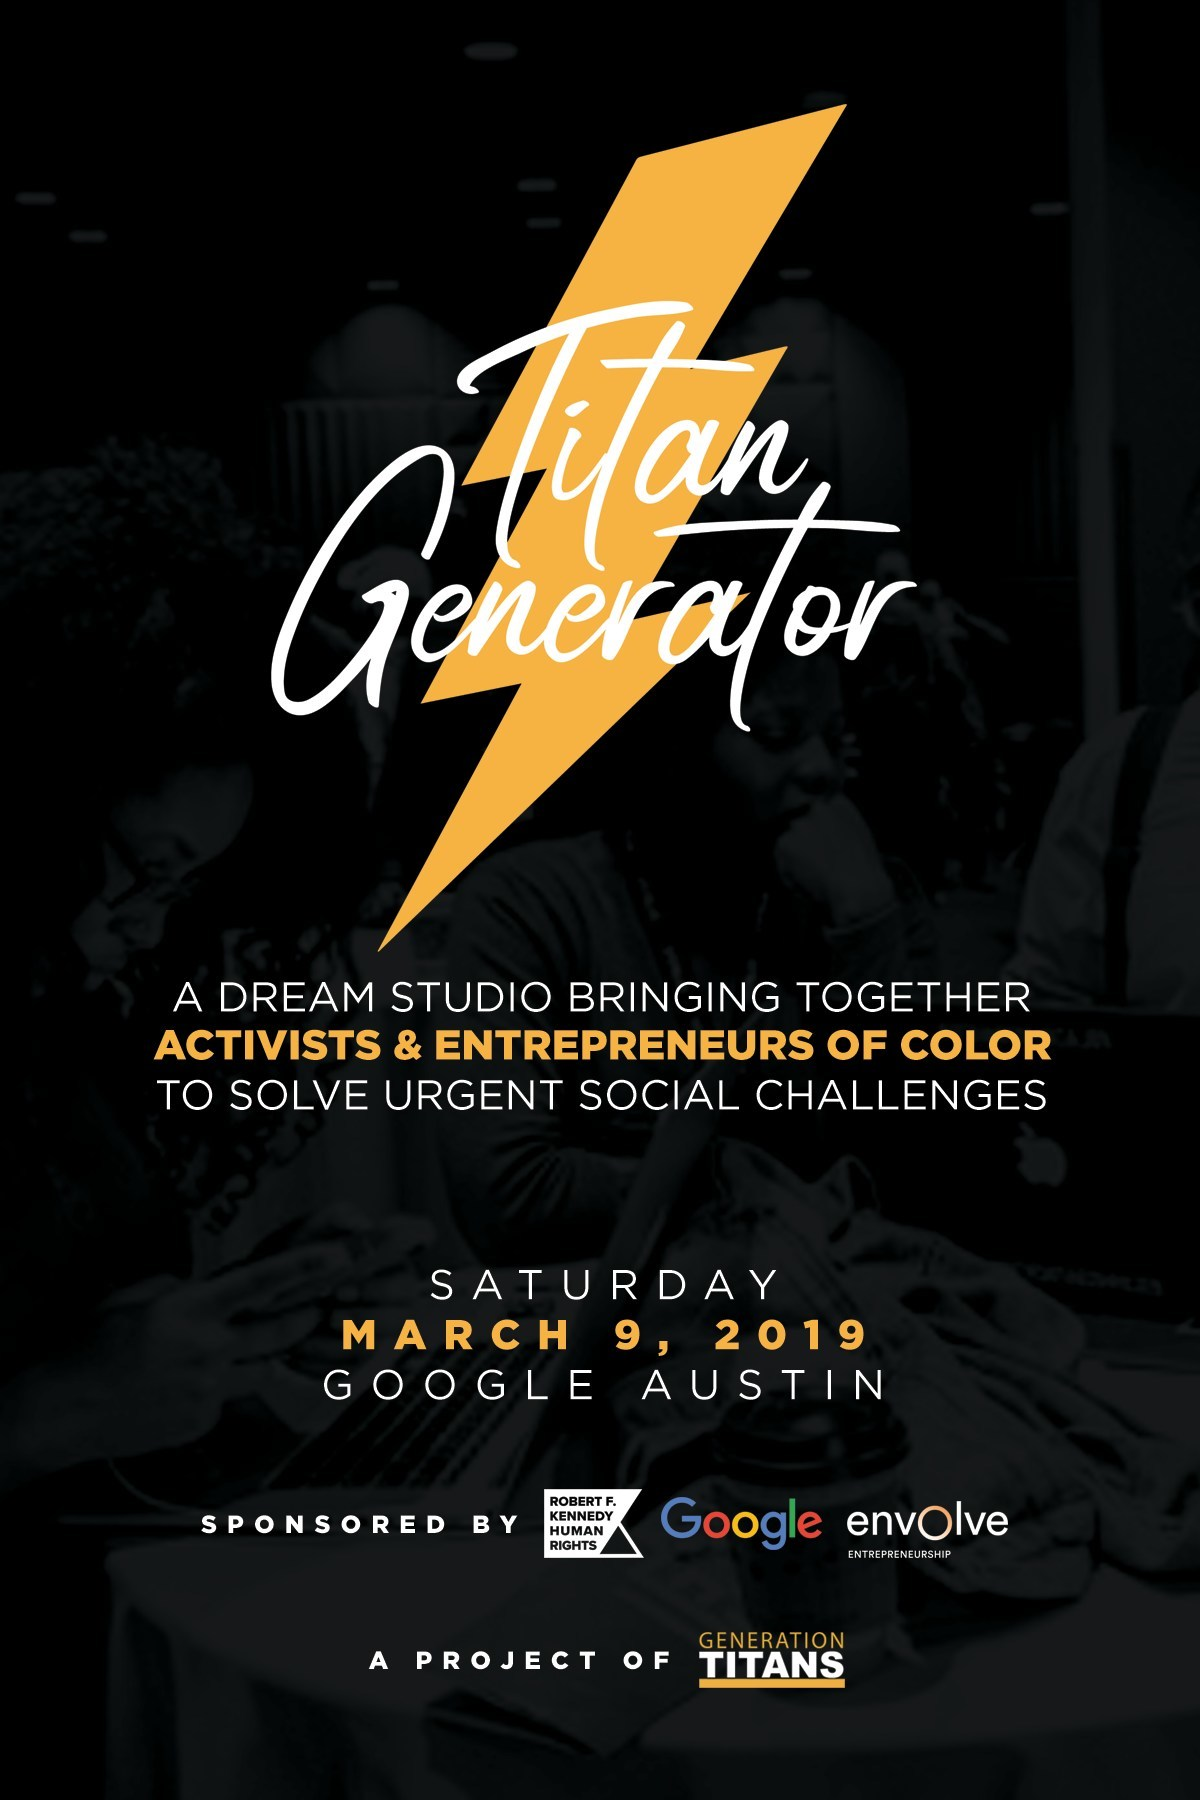 The Titan Generator event will take place on Saturday March 9 at Google Austin (PRNewsfoto/Generation Titans)